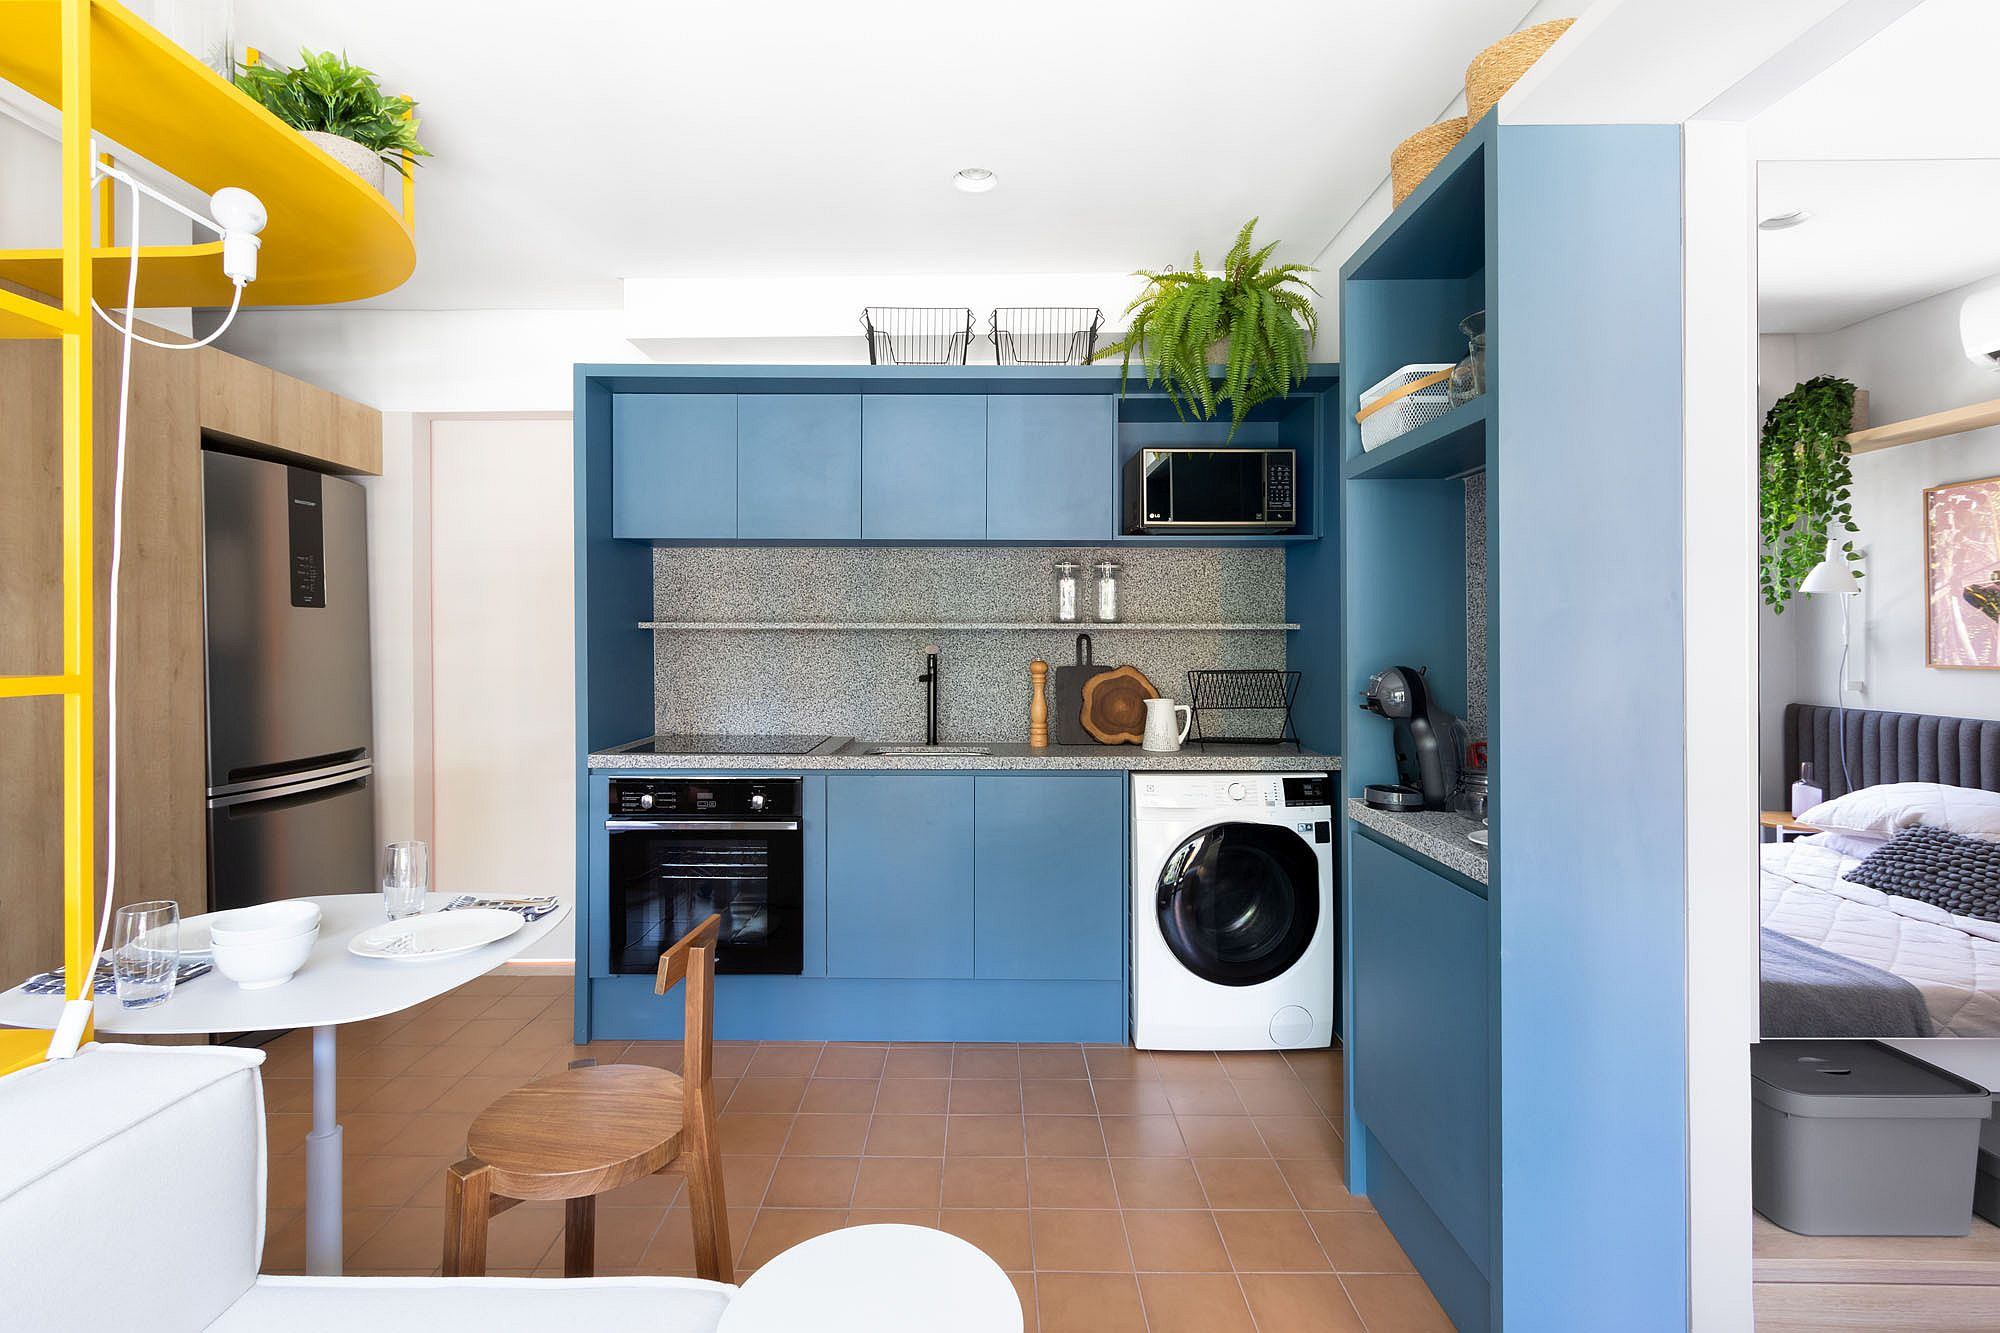 Custom blue cabinets combined with granite countertops in the space-savvy kitchen